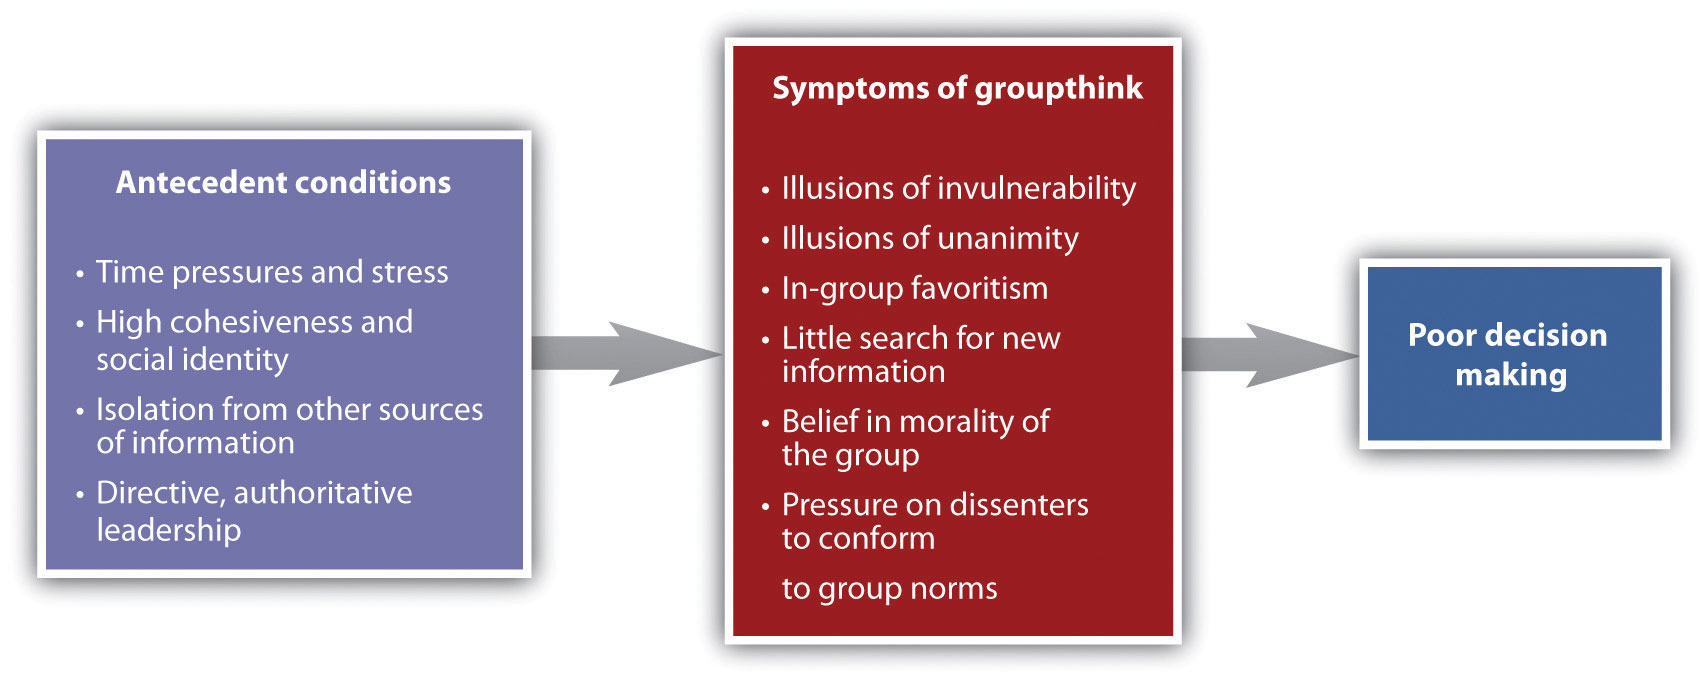 Antecedents and Outcomes of Groupthink: Antecedent conditions (time pressures and stress, high cohesiveness and social identity, isolation from other sources of information, directive, authoritative leadership). Symptoms of groupthink (illusions of invulnerability, illusions of unanimity, in-group favoritism, little search for new information, belief in morality of the group, pressure on dissenters to conform to group norms). Poor decision making